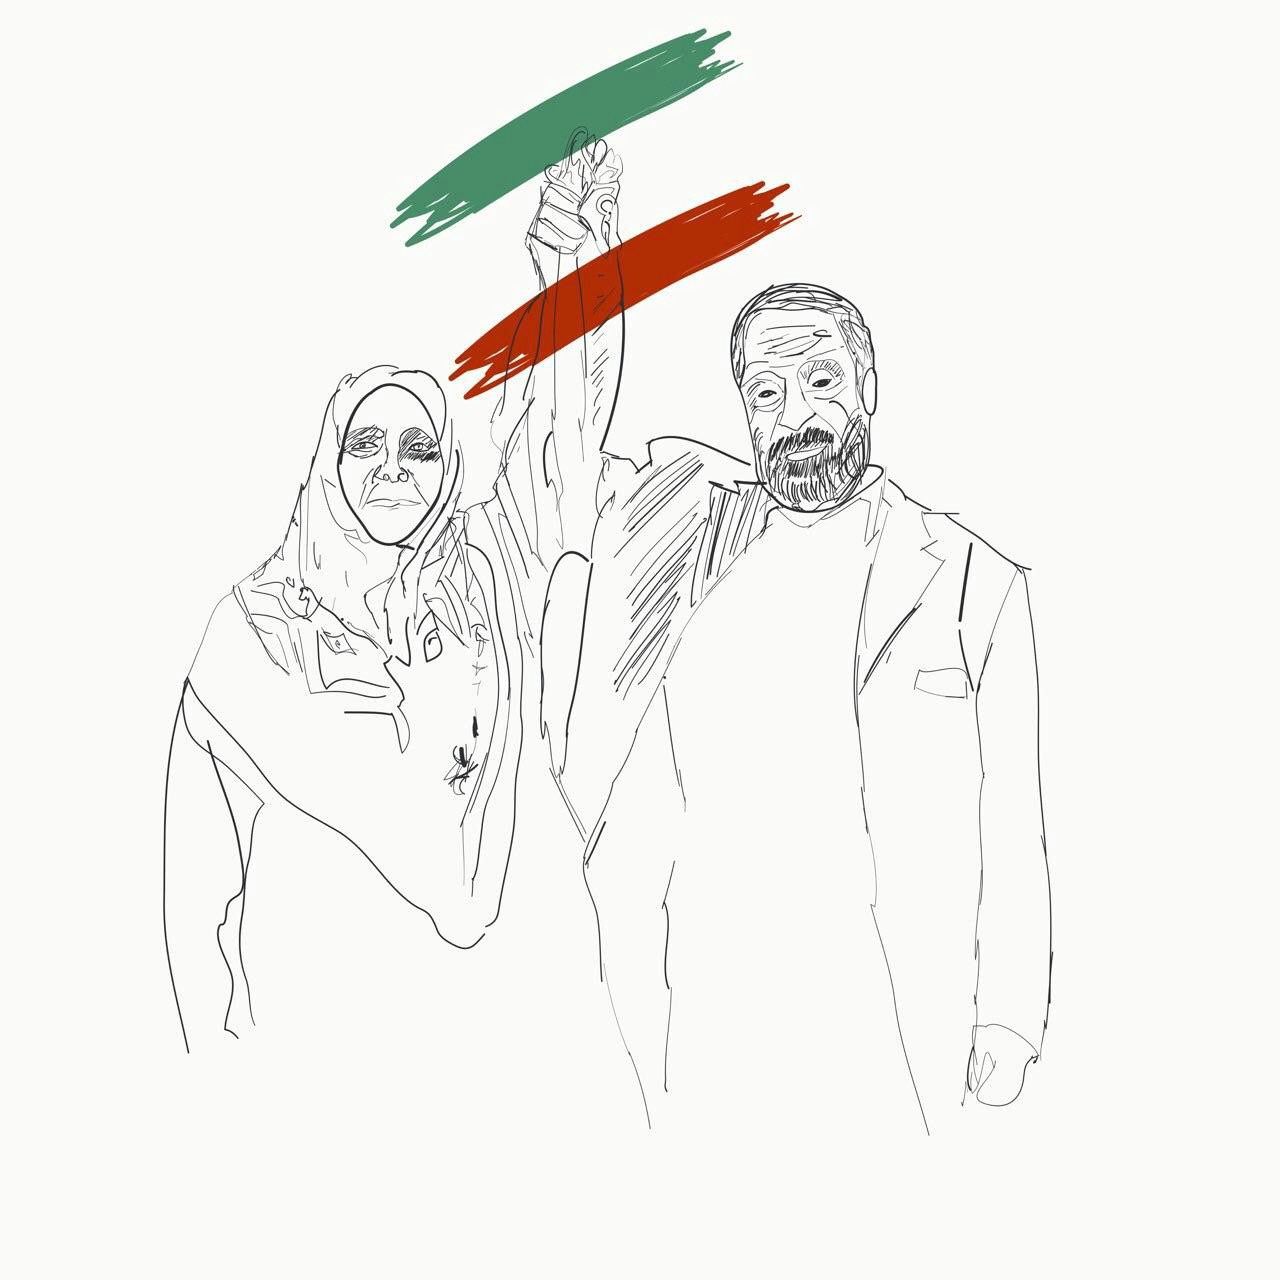 hashem khaastaar one od the independent leaders of teachers in iran is released now after 19 days this is his portrait with his wife to proud for iran